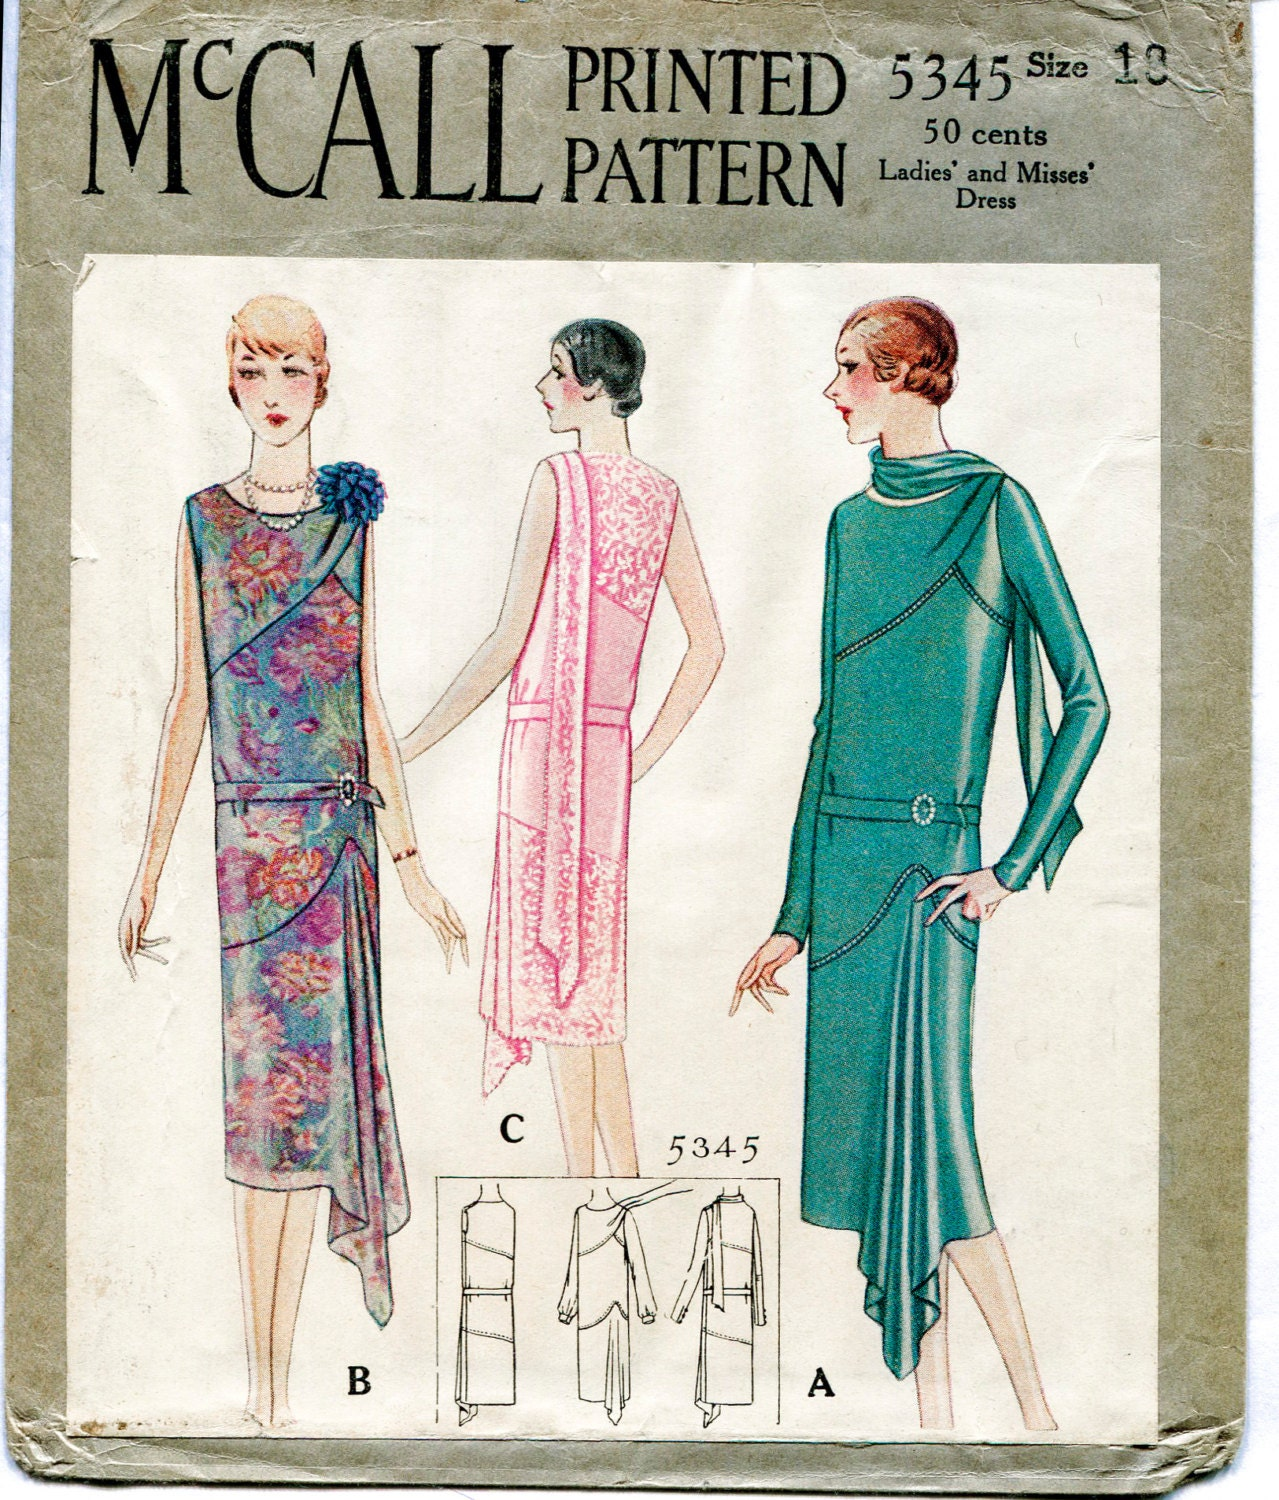 1920s 1930s repro vintage sewing pattern flapper day or